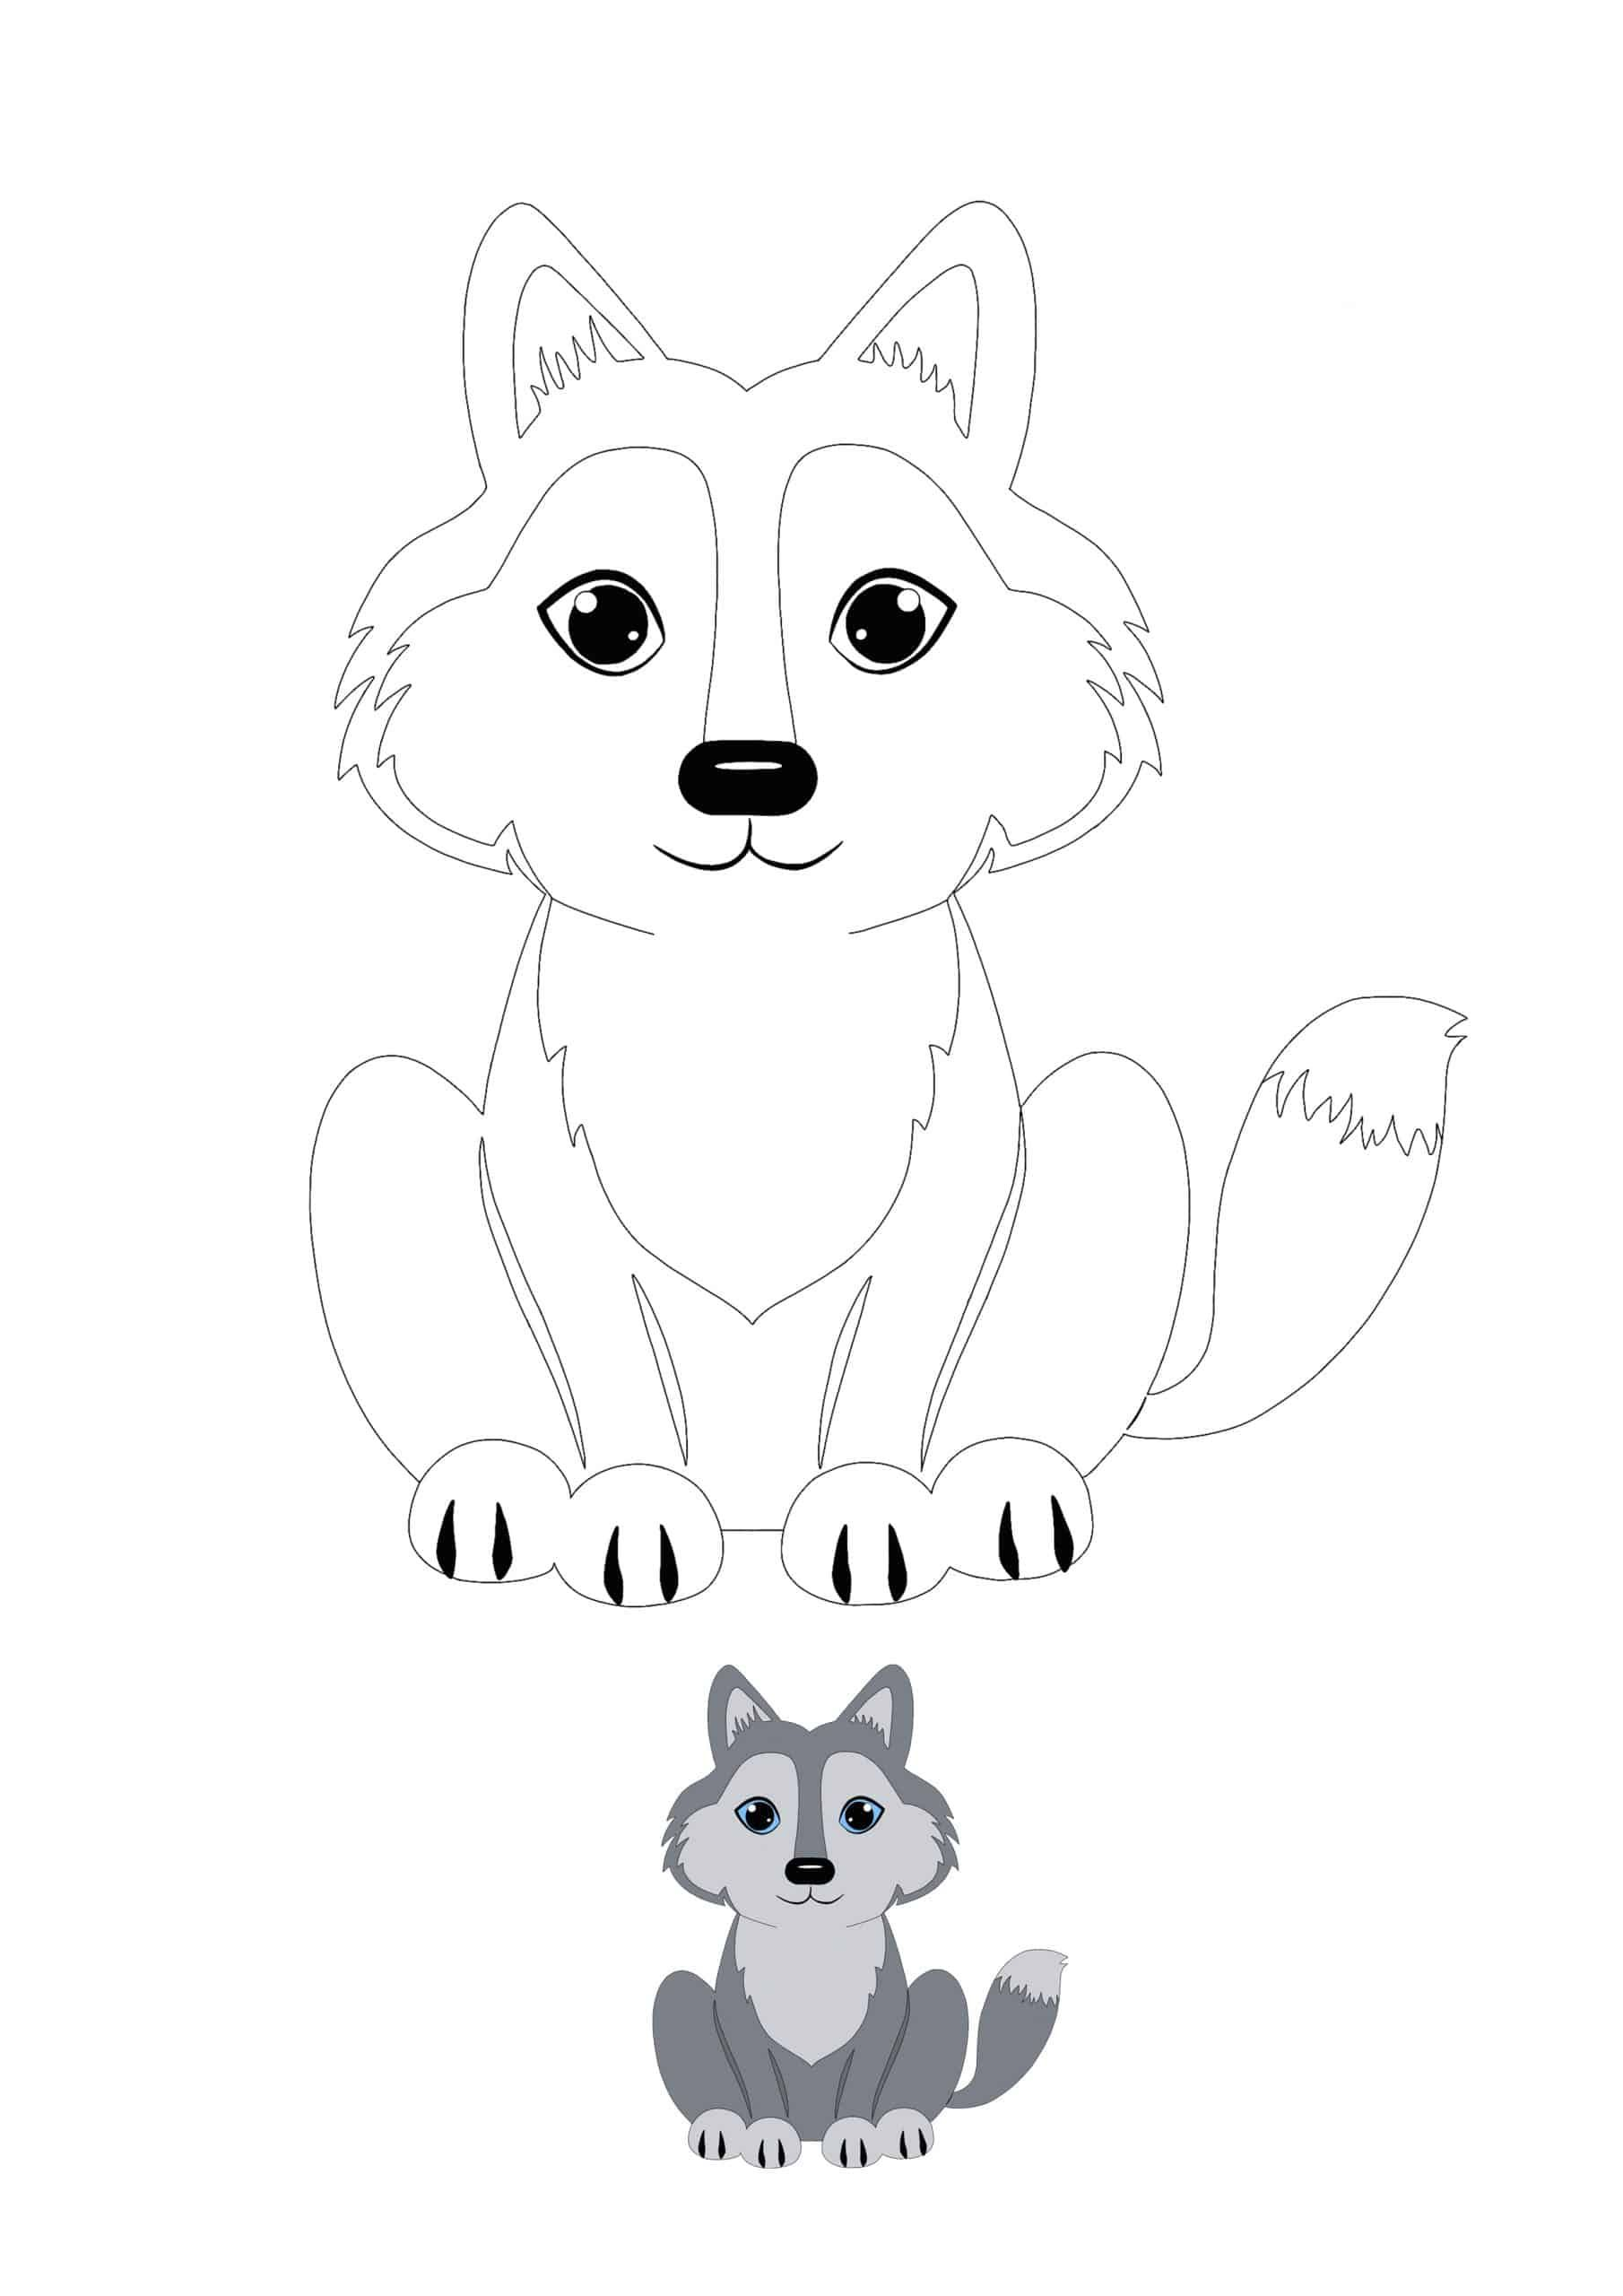 Kawaii Wolf Coloring Page With Sample Coloring Pages Free Printable Coloring Sheets Free Printable Coloring Pages